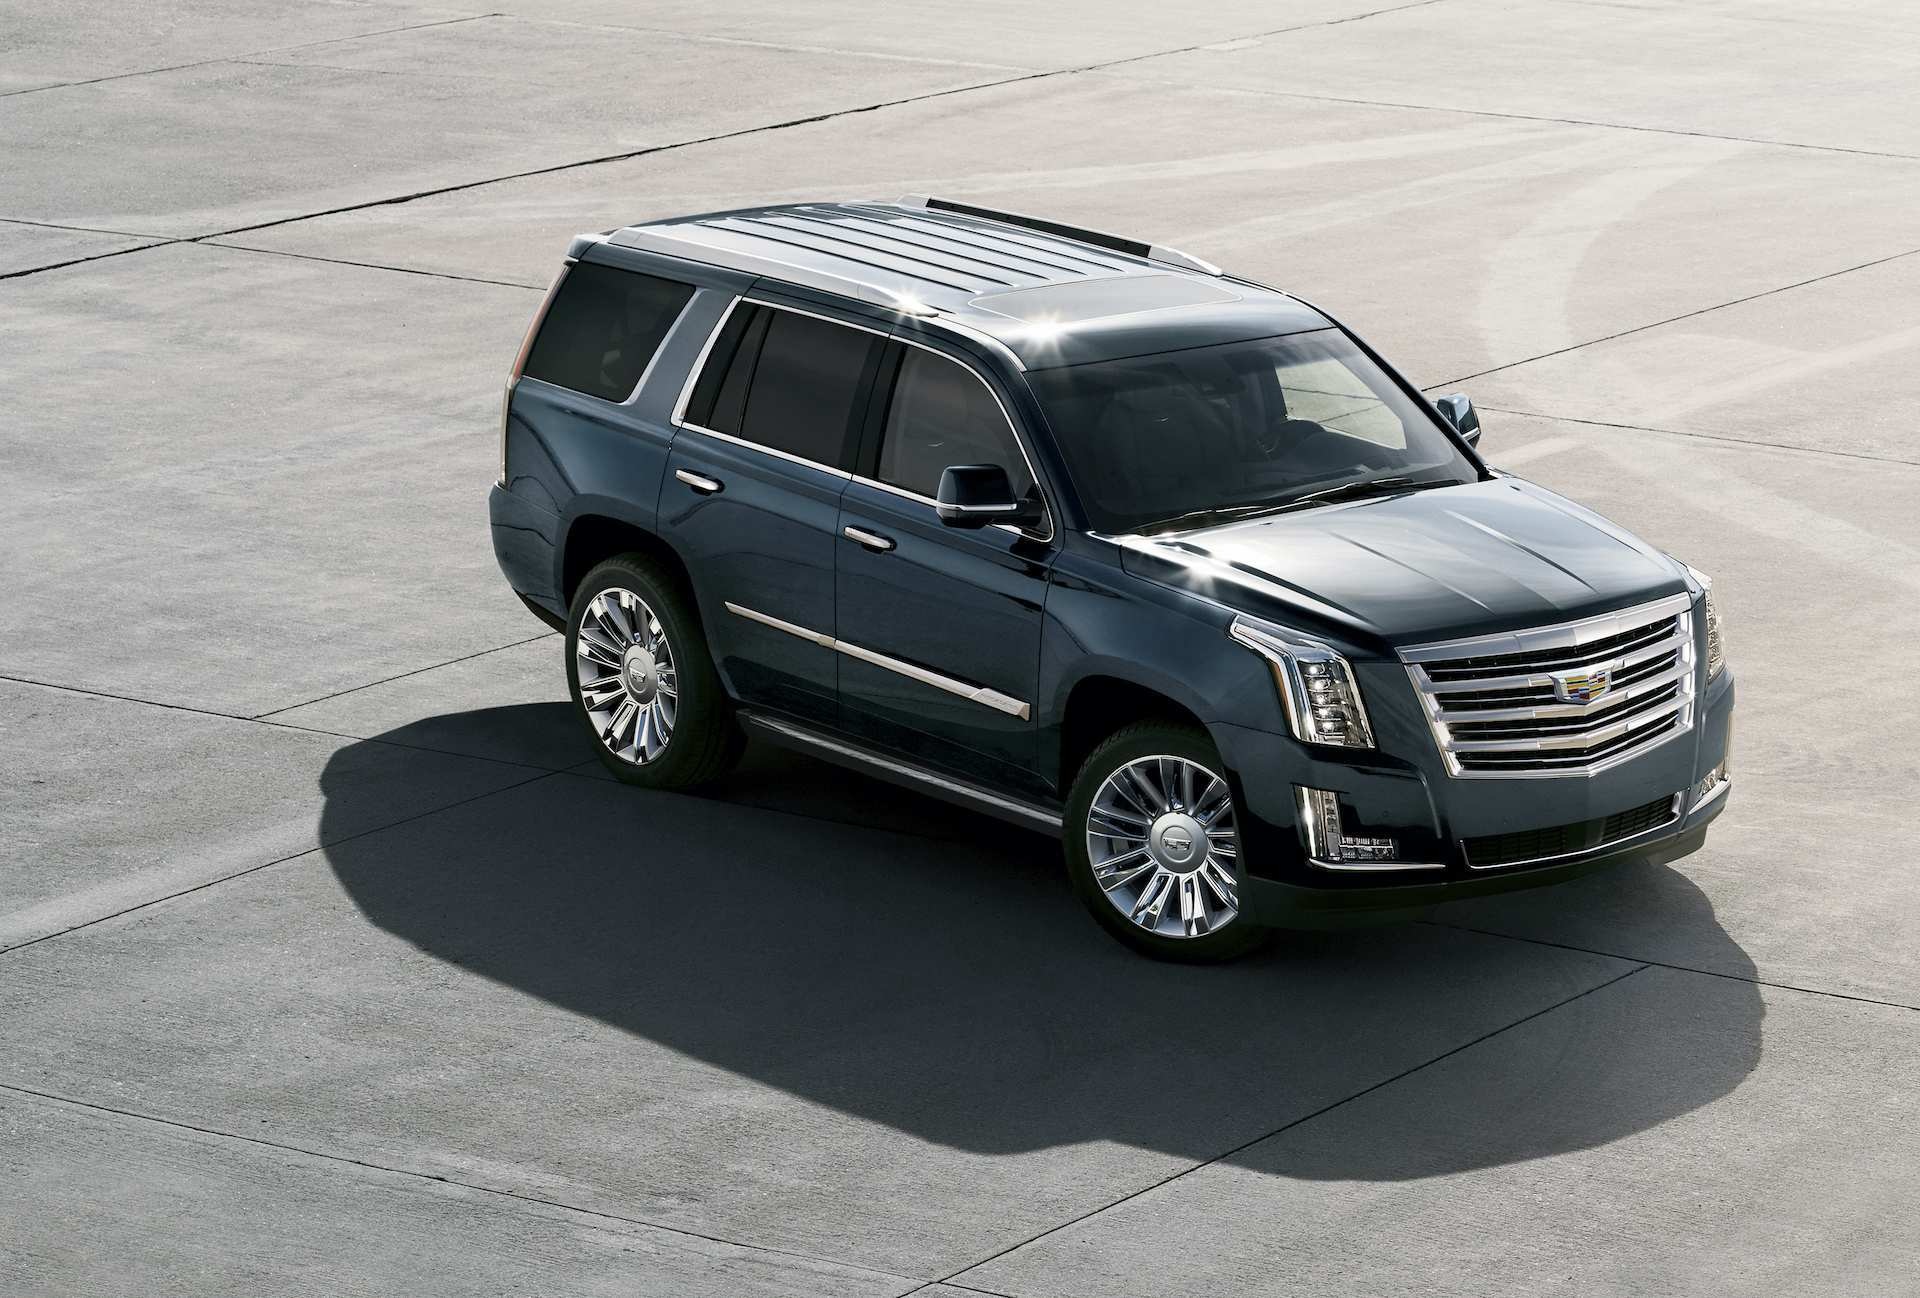 64 New 2020 Cadillac Escalade Video Rumors